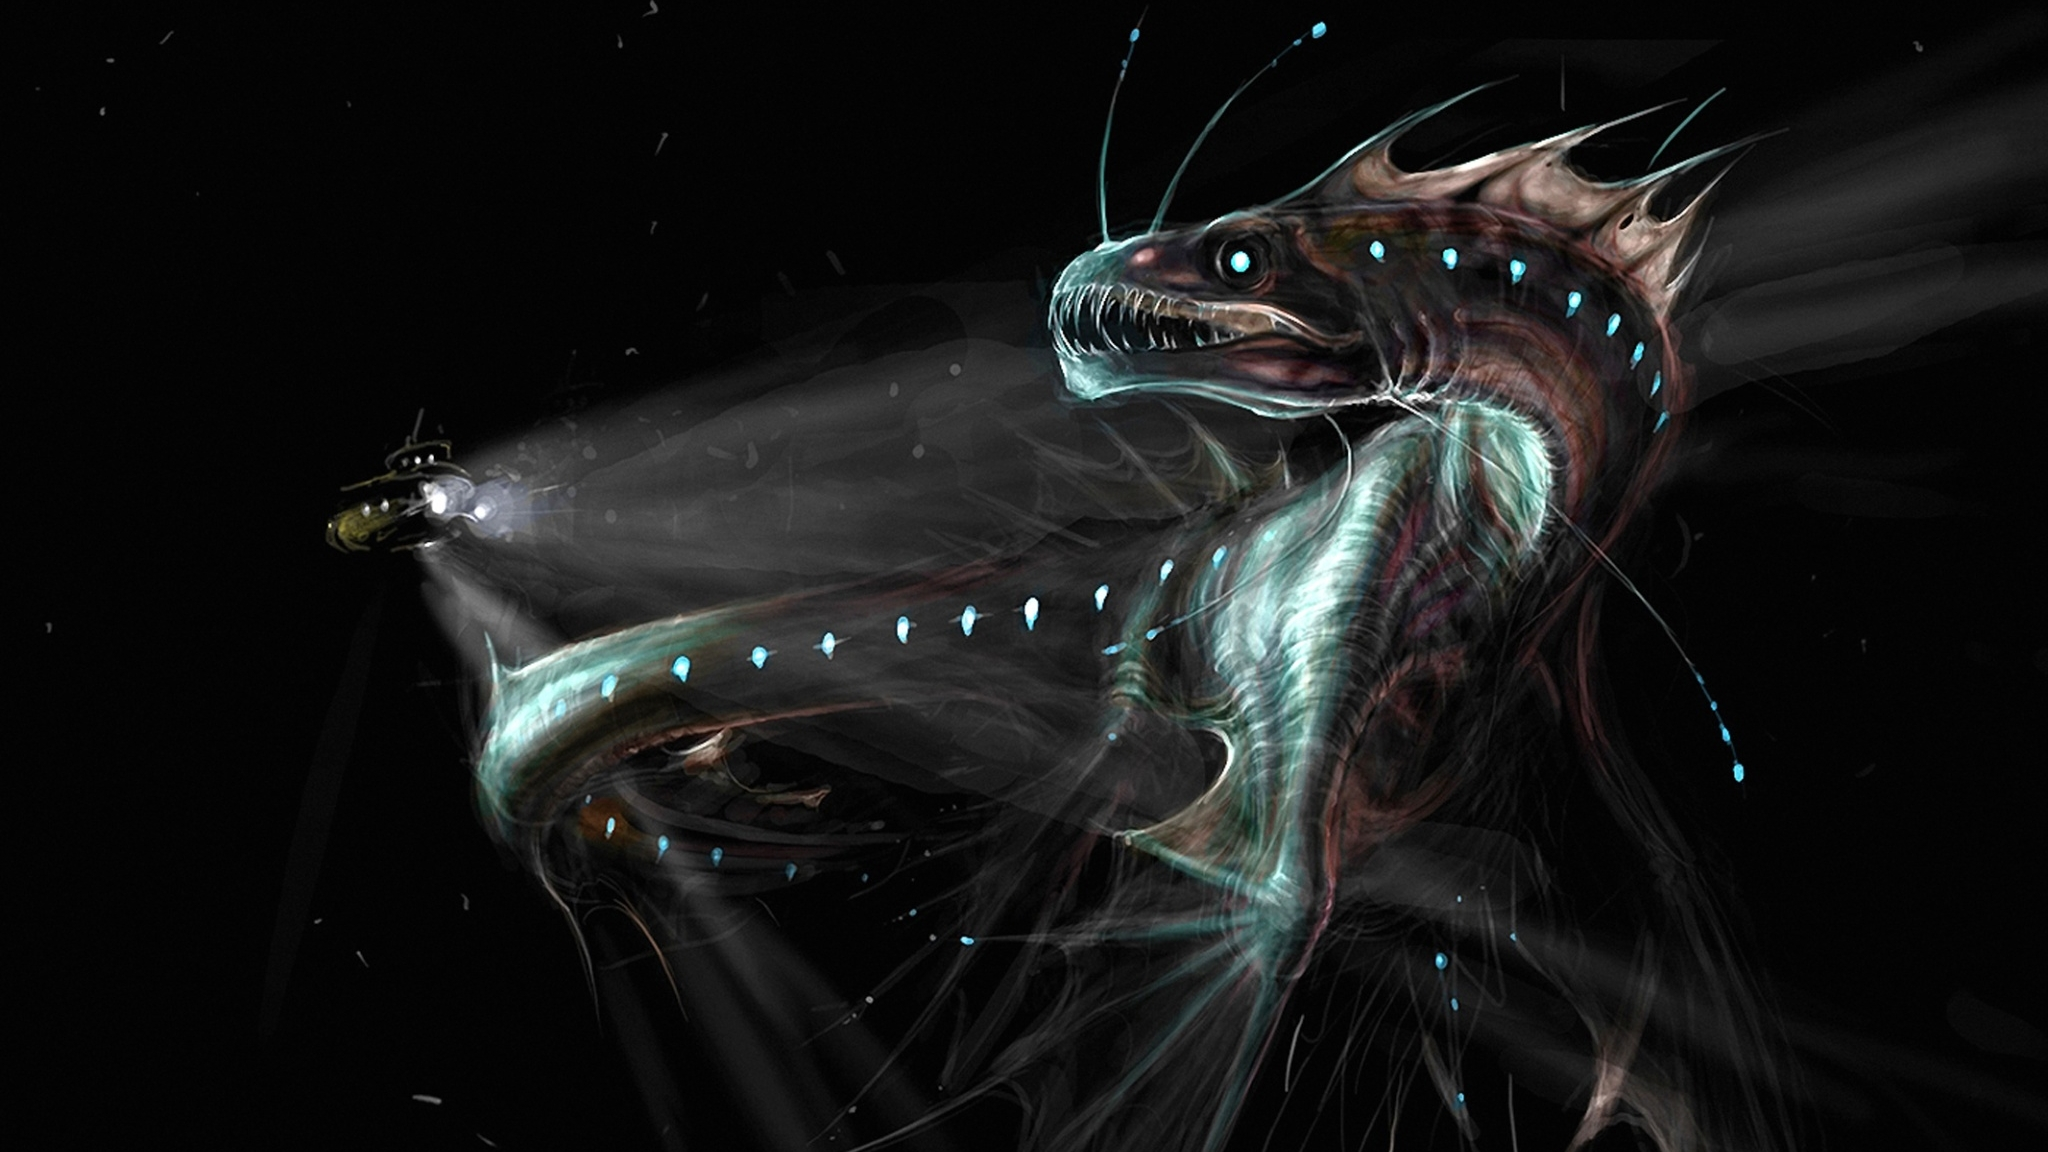 Sea Monster HD Wallpaper | Background Image | 2048x1152 ...